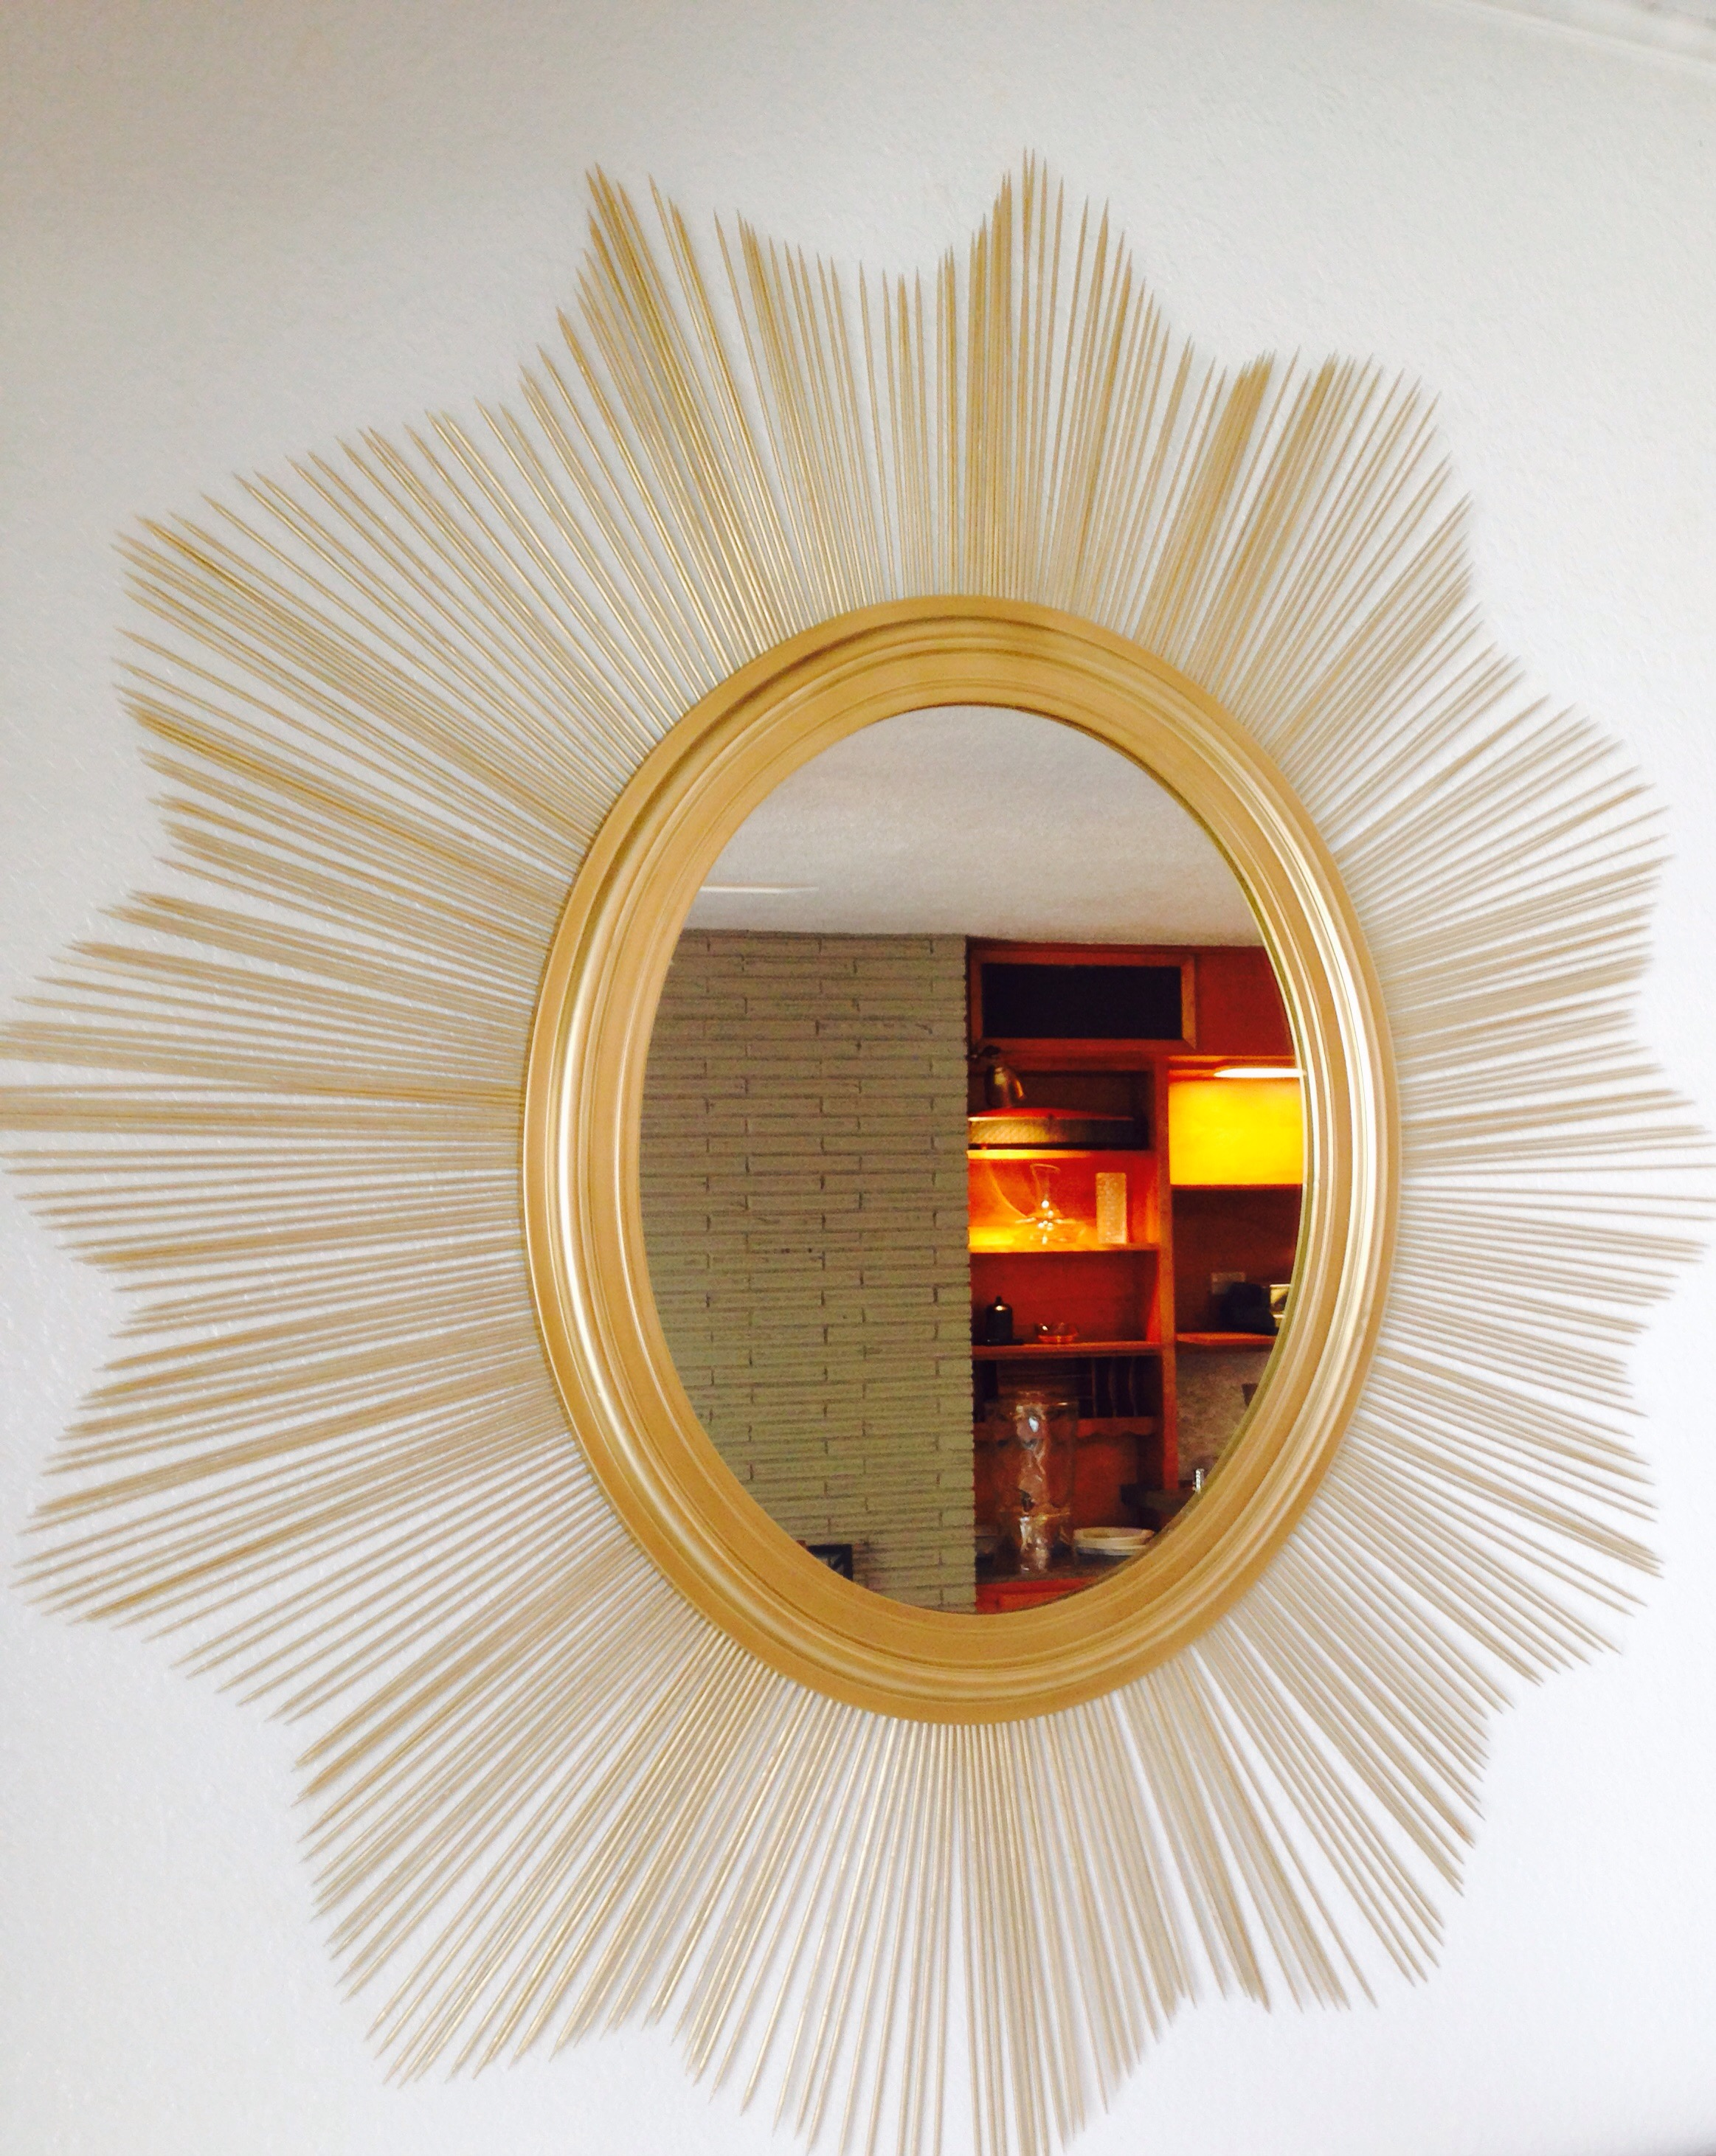 Gold Sunburst Mirror | Martha Stewart Sunburst Mirror | Martha Stewart Valance